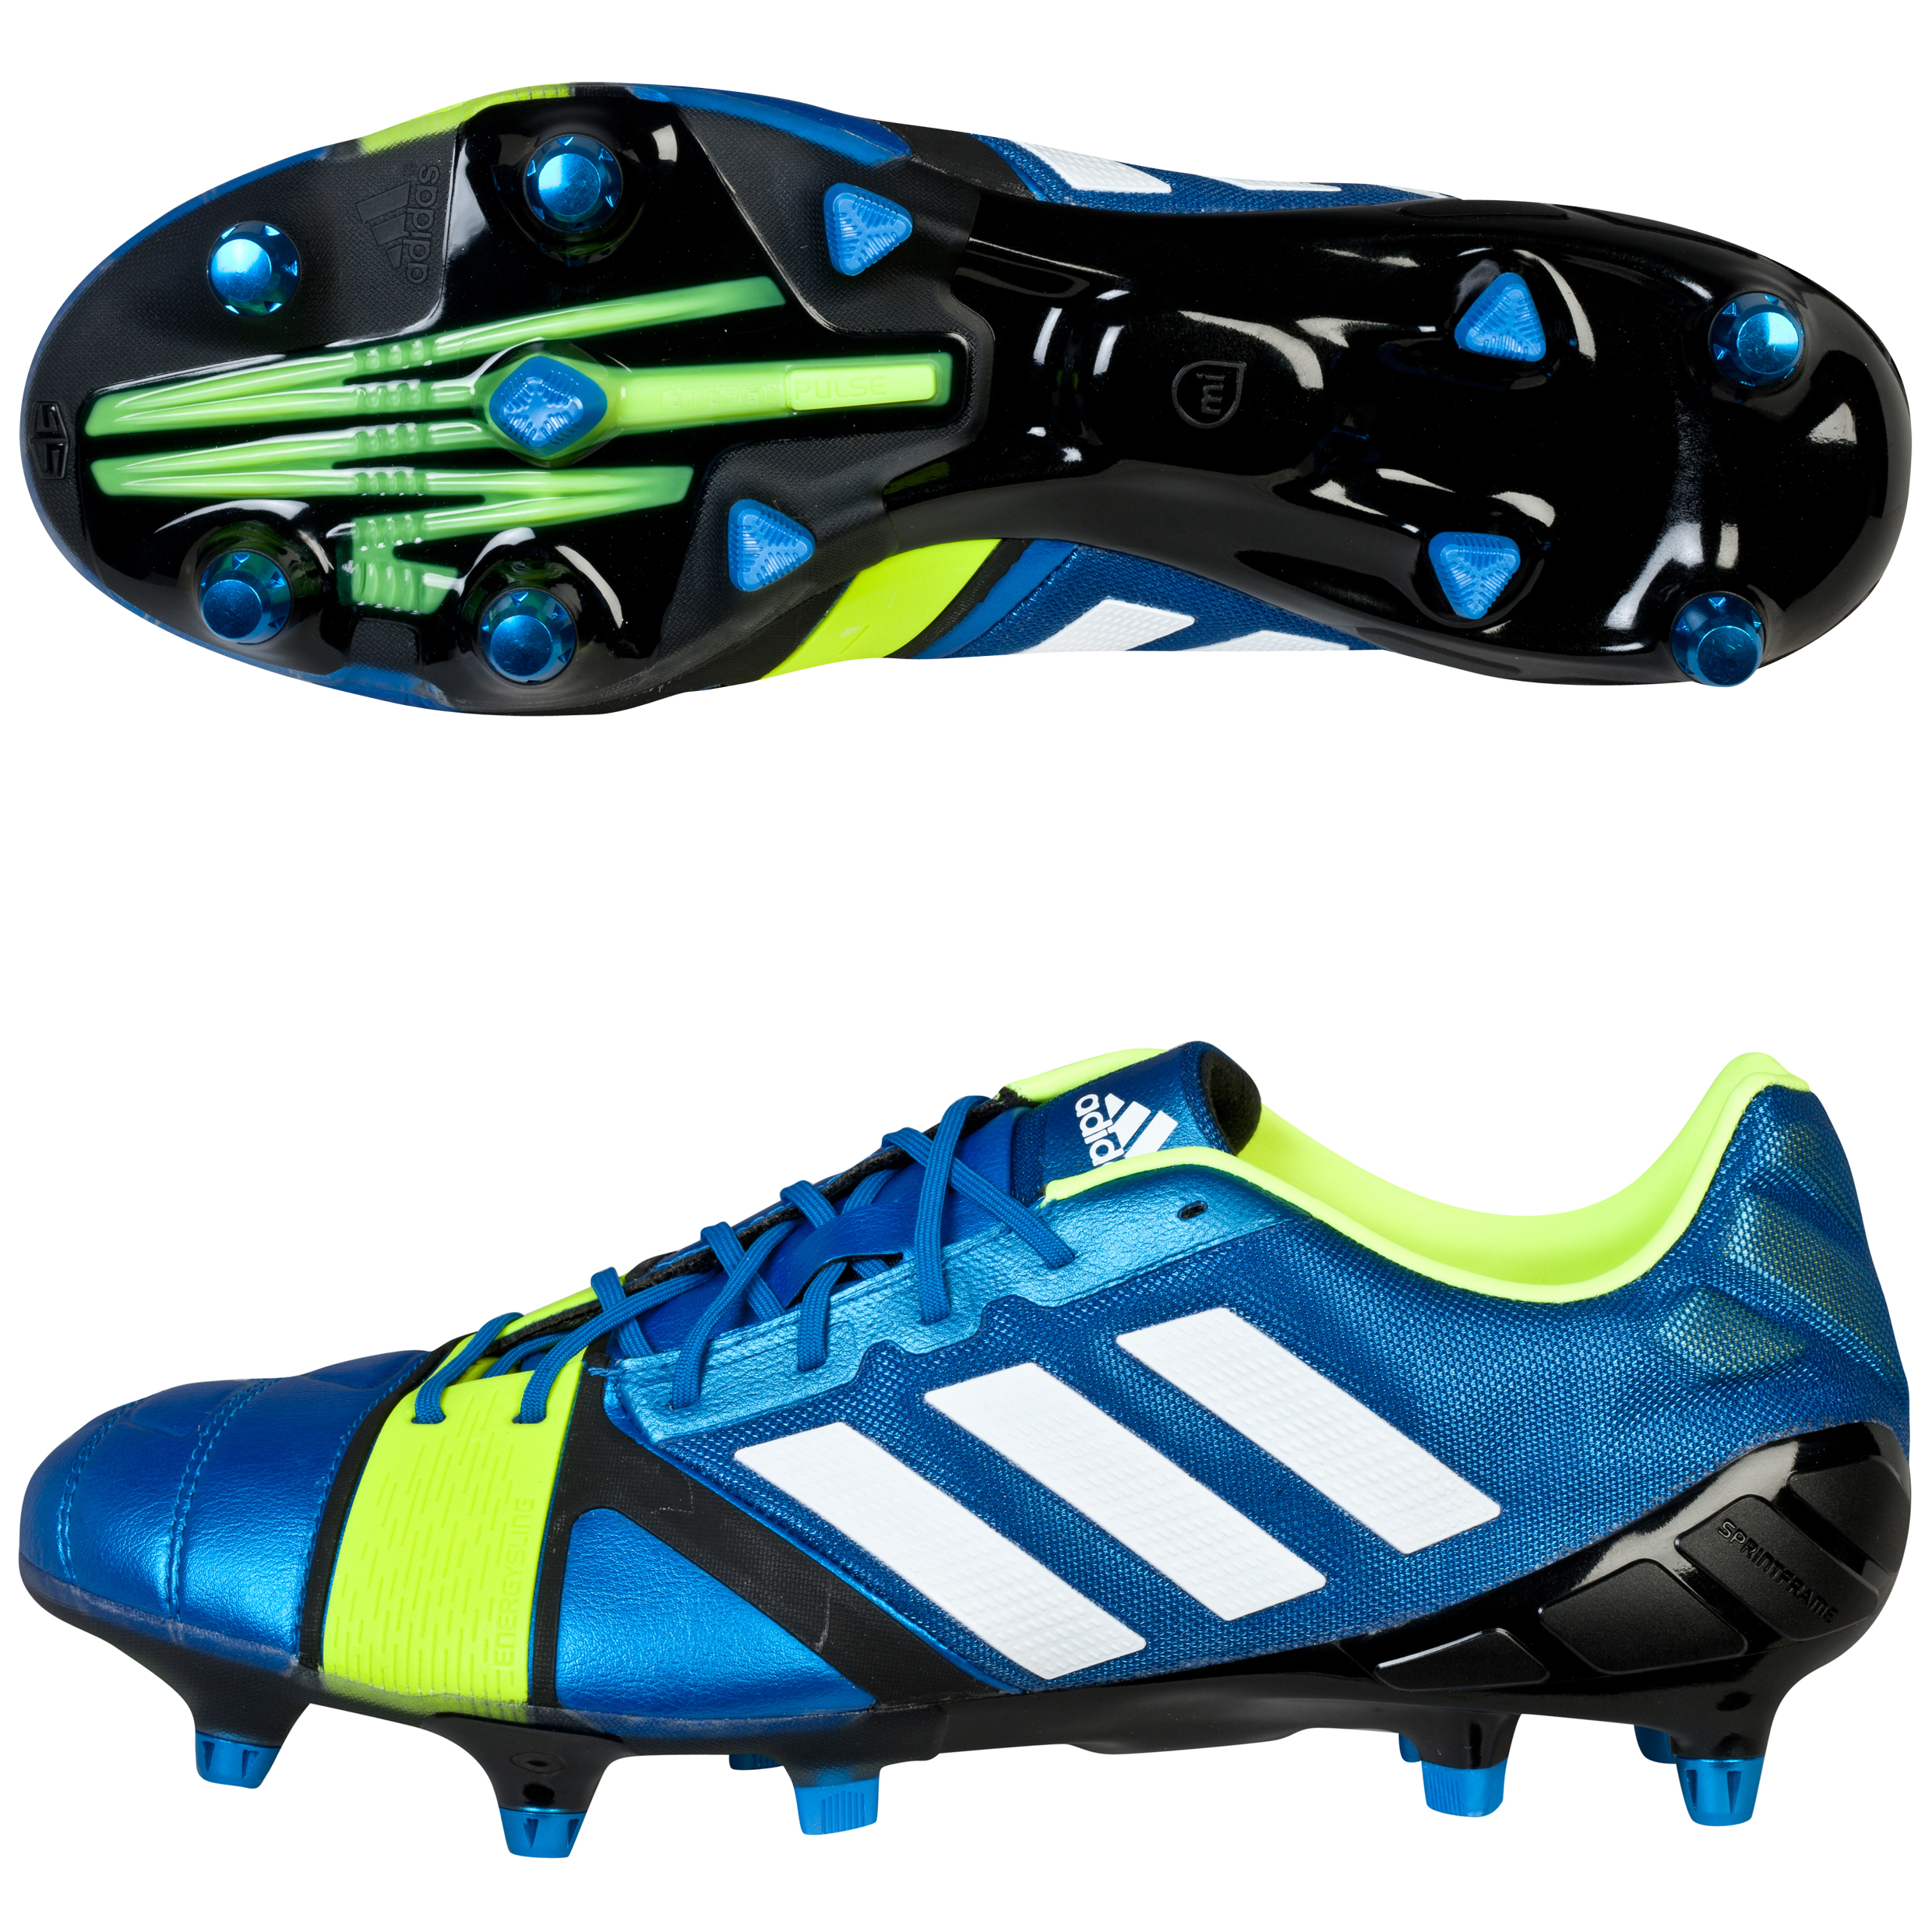 Adidas Nitrocharge 1.0 XTRX Soft Ground Football Boots Blue